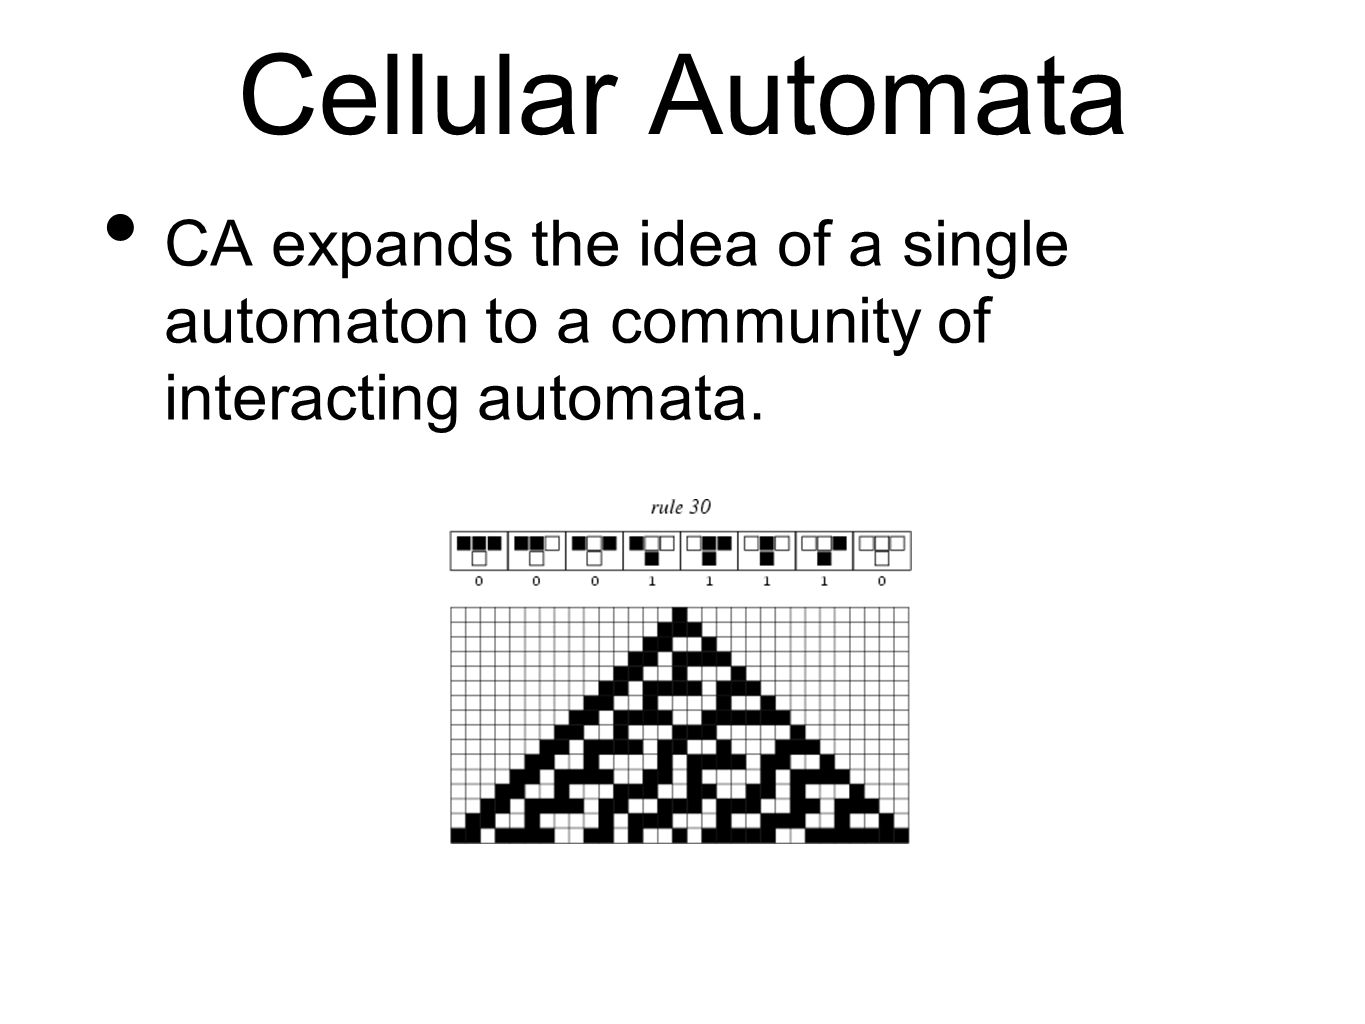 CA expands the idea of a single automaton to a community of interacting automata. Cellular Automata